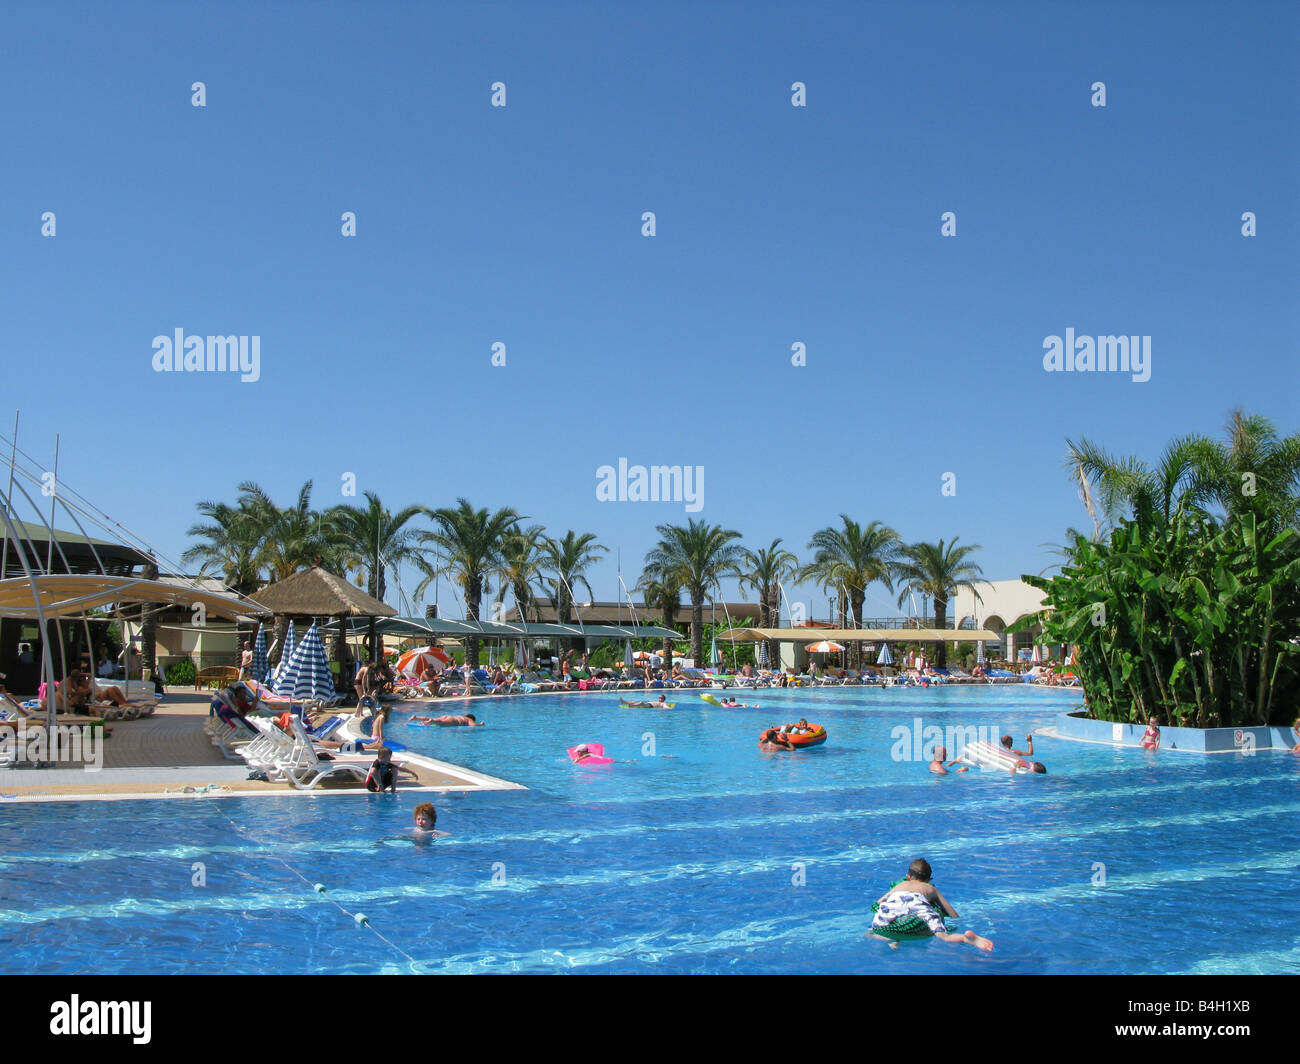 Swimming pool at holiday resort - Stock Image